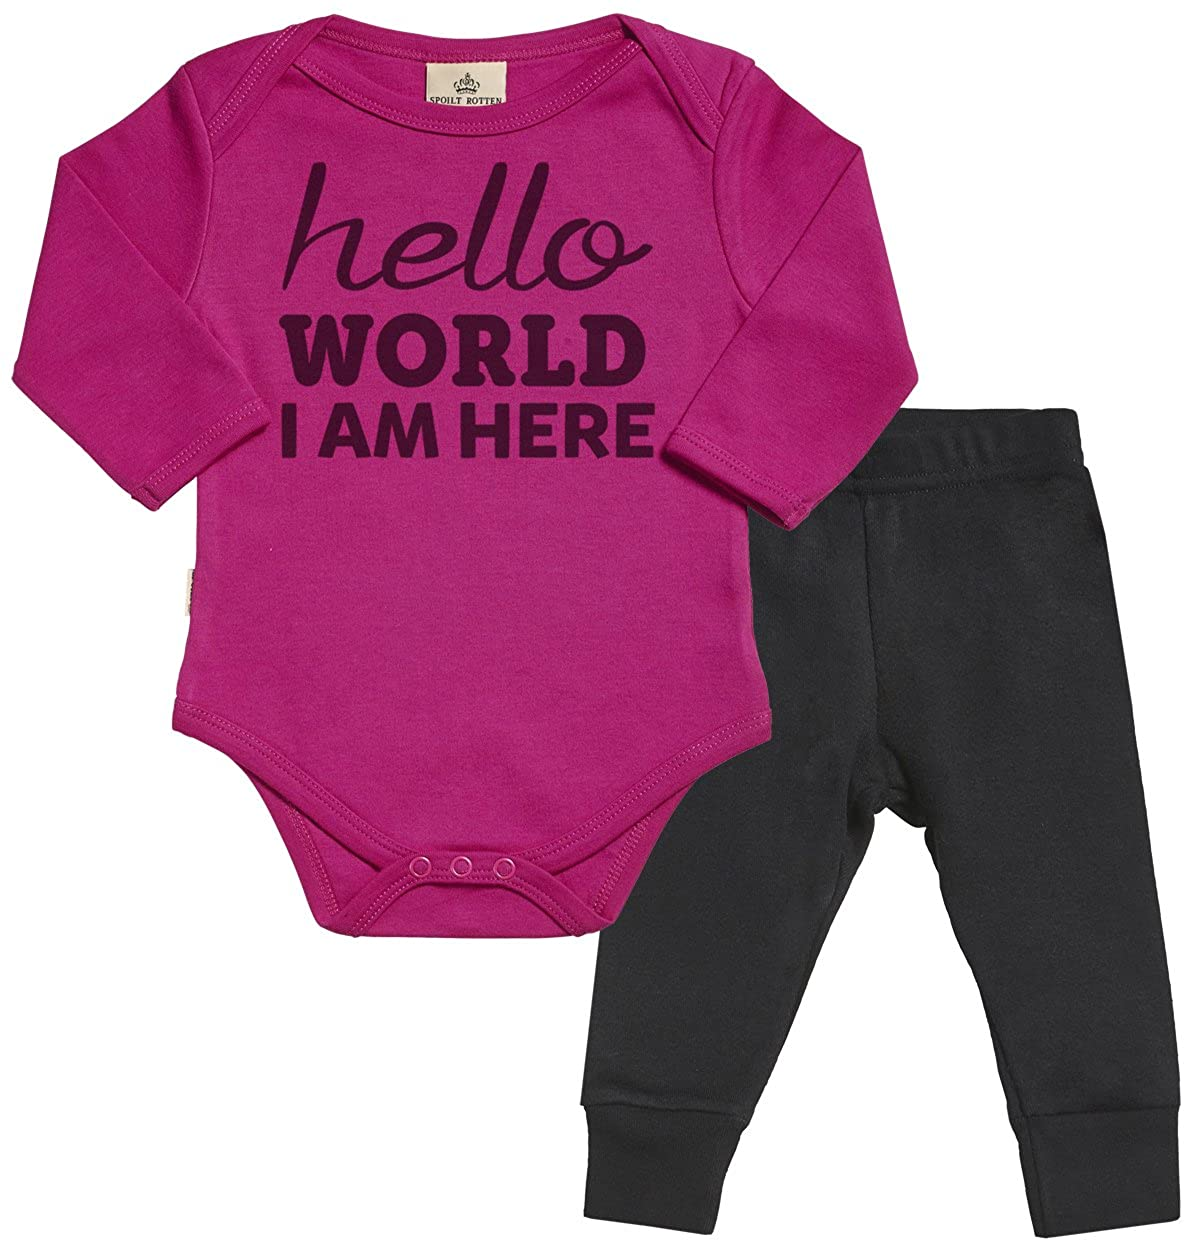 Baby Strampler /& Baby-Jerseyhose Baby Body /& Baby Hosen Babyoutfit Spoilt Rotten Hello World I Am New Here Baby Set